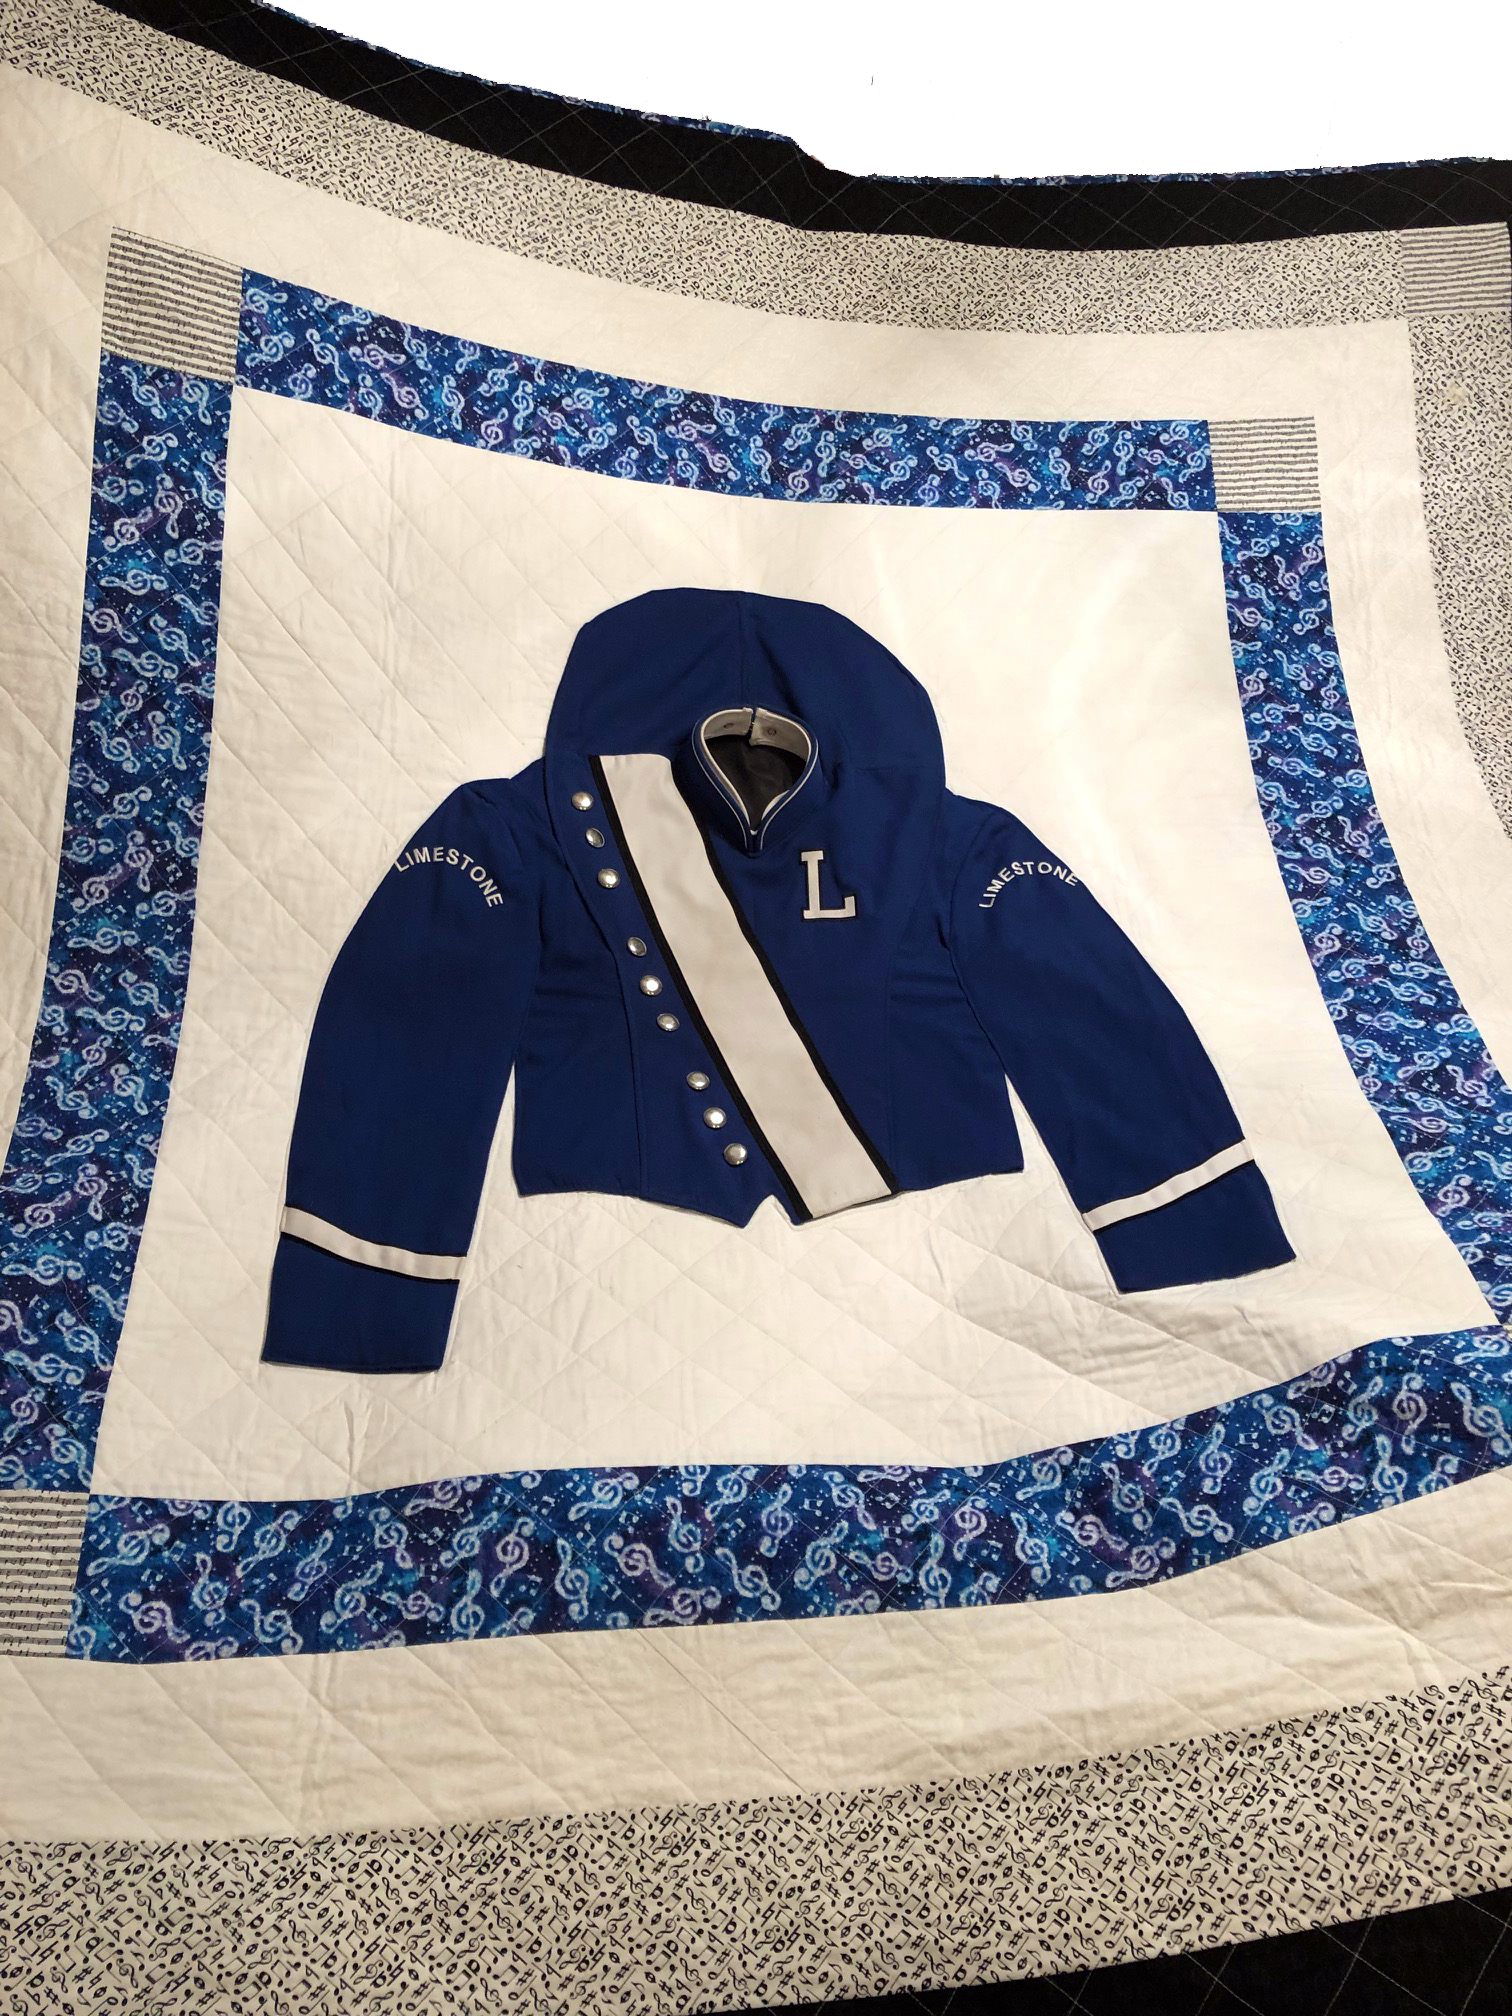 Quilt from uniform